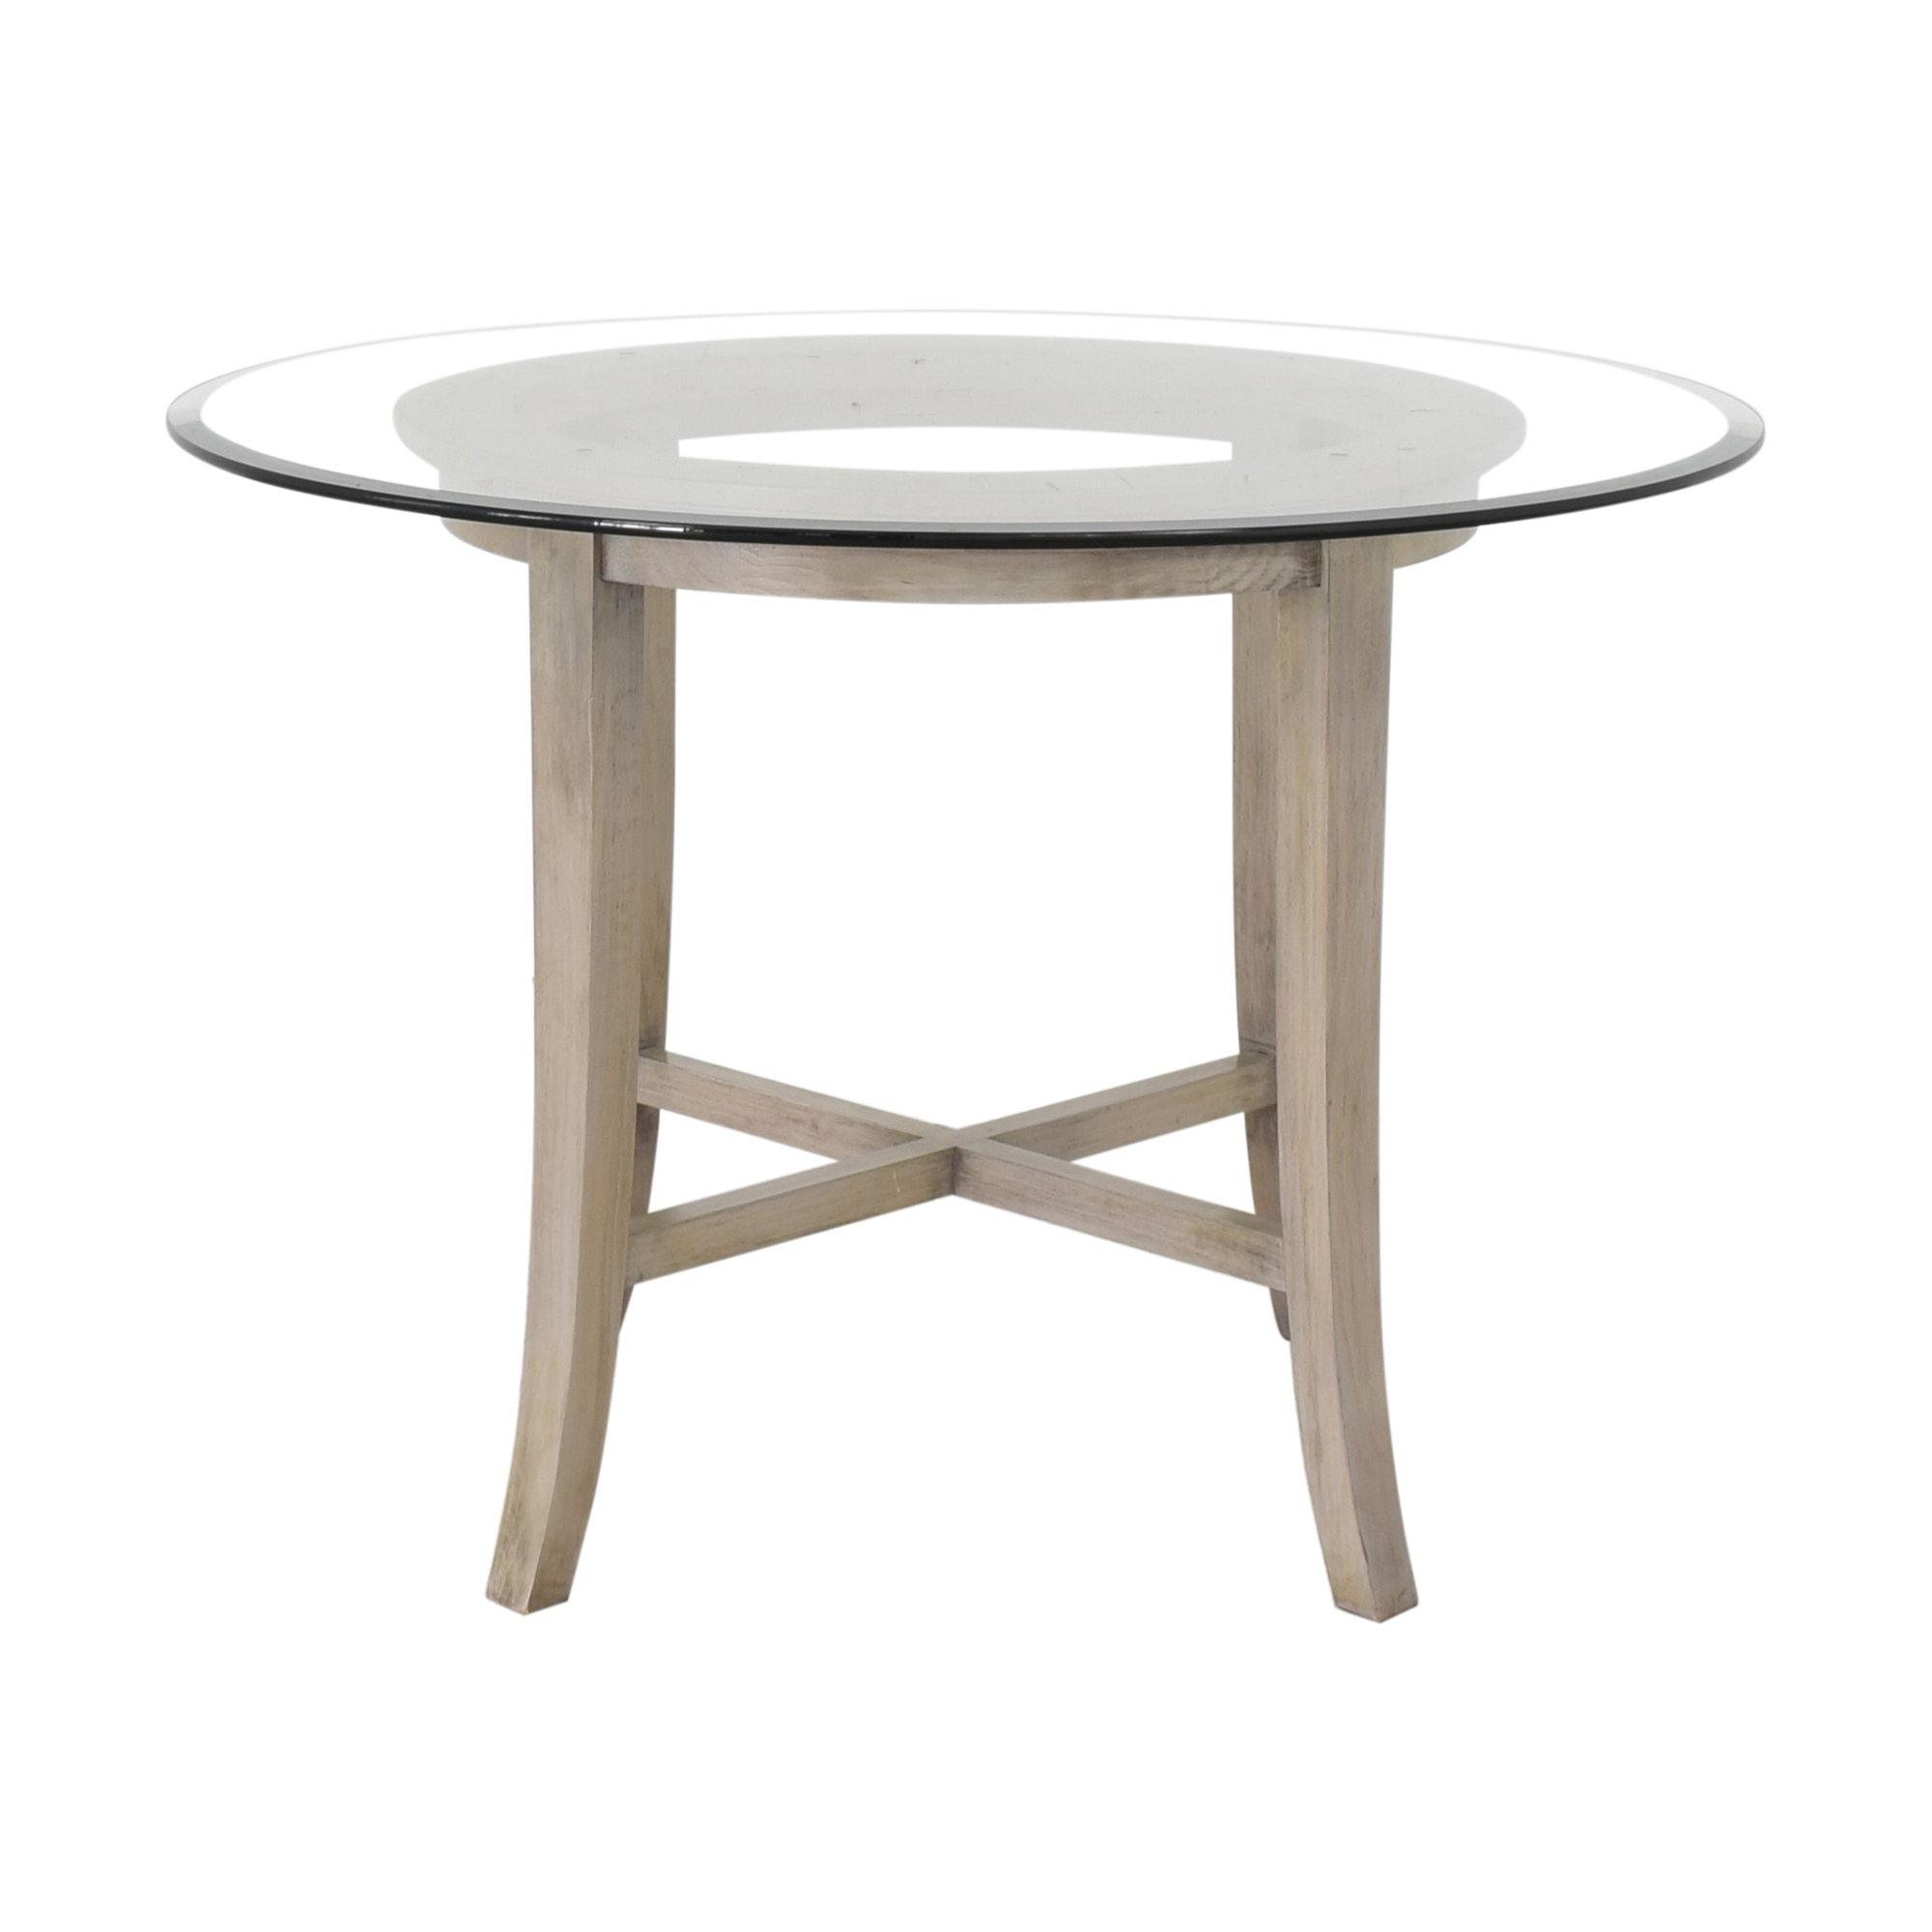 Crate & Barrel Crate & Barrel Halo Grey Round Dining Table with Glass Top on sale